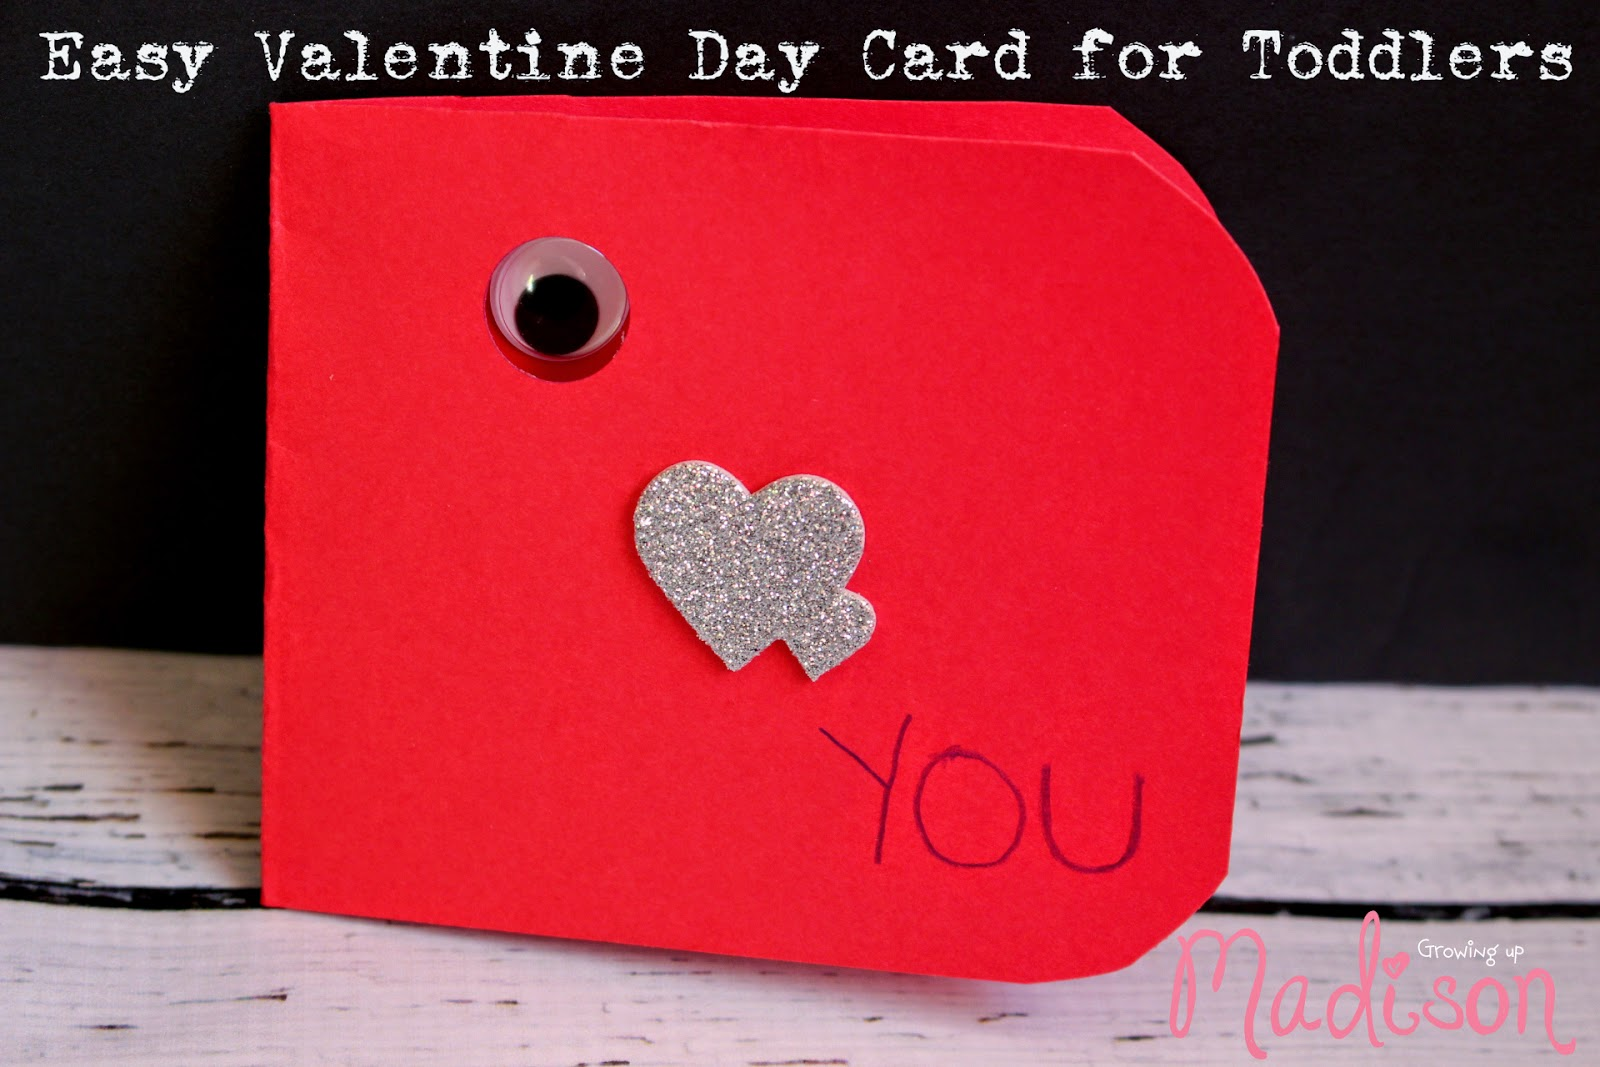 Easy Valentine Day Card for Toddlers Growing up Madison